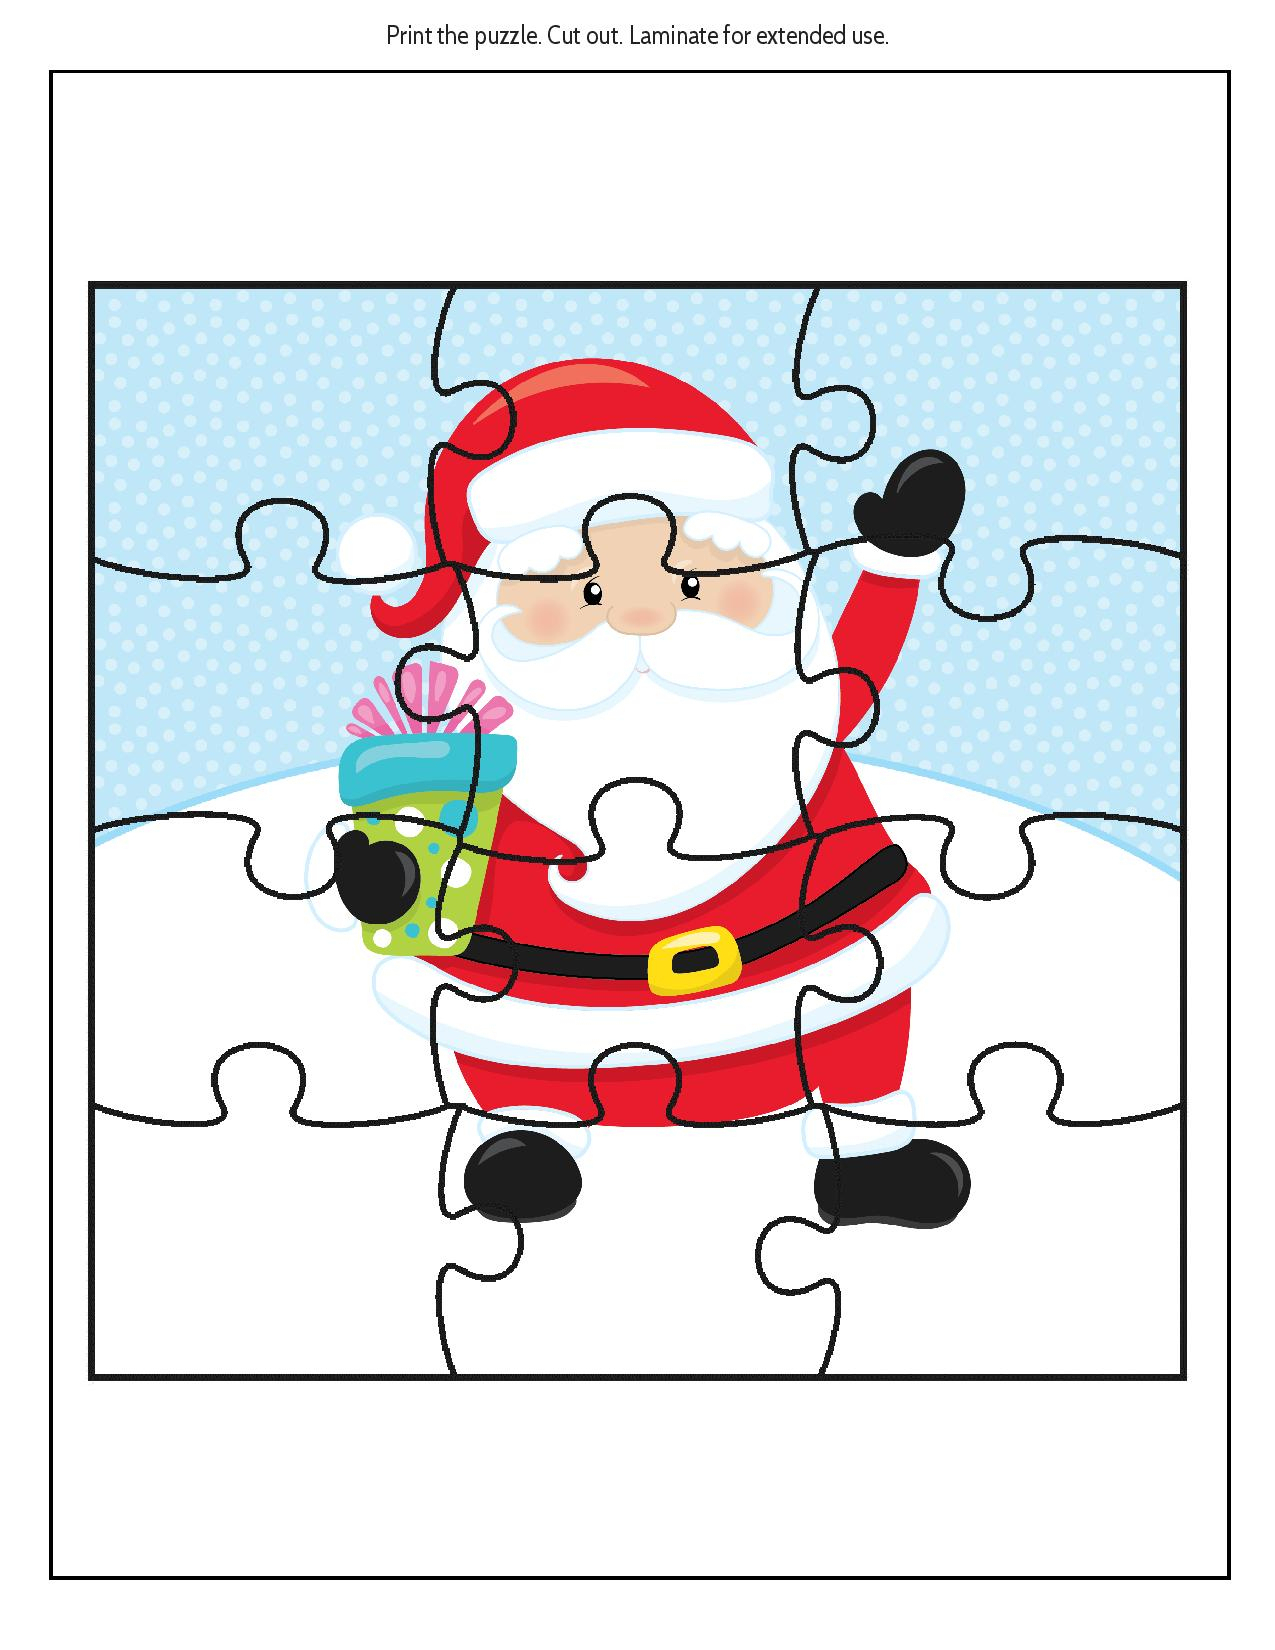 image about Free Printable Christmas Puzzles named Printable Santa Puzzle Printable Crossword Puzzles